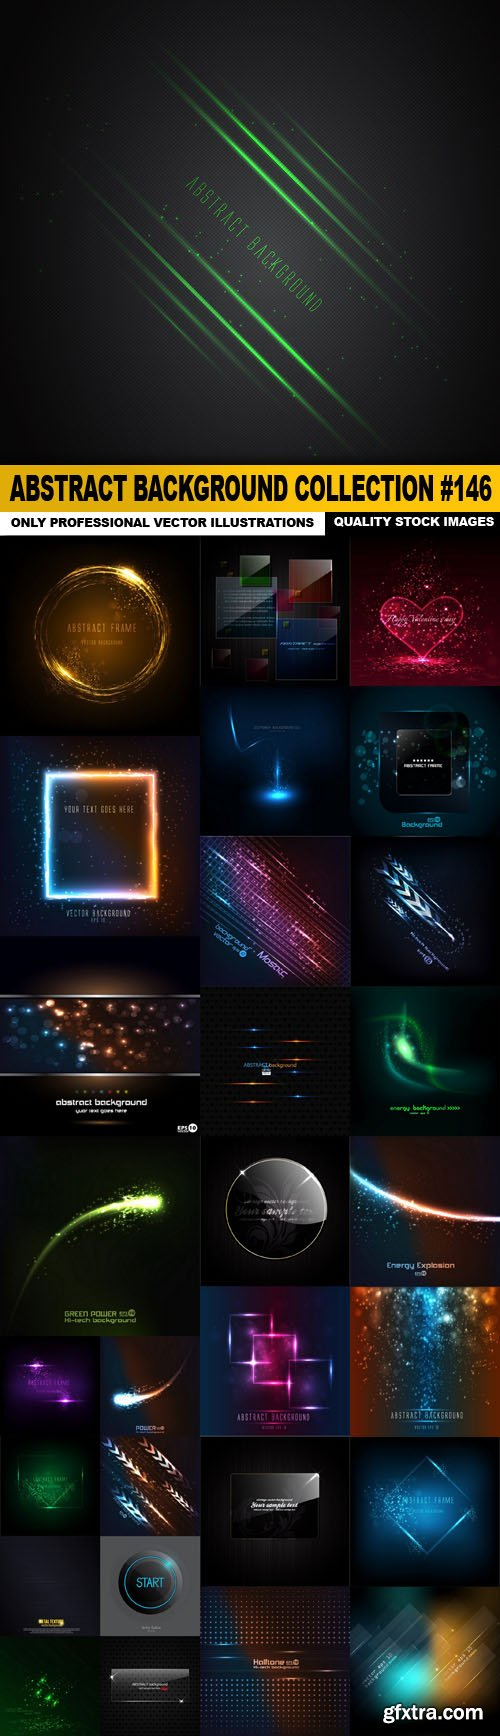 Abstract Background Collection #146 - 30 Vector